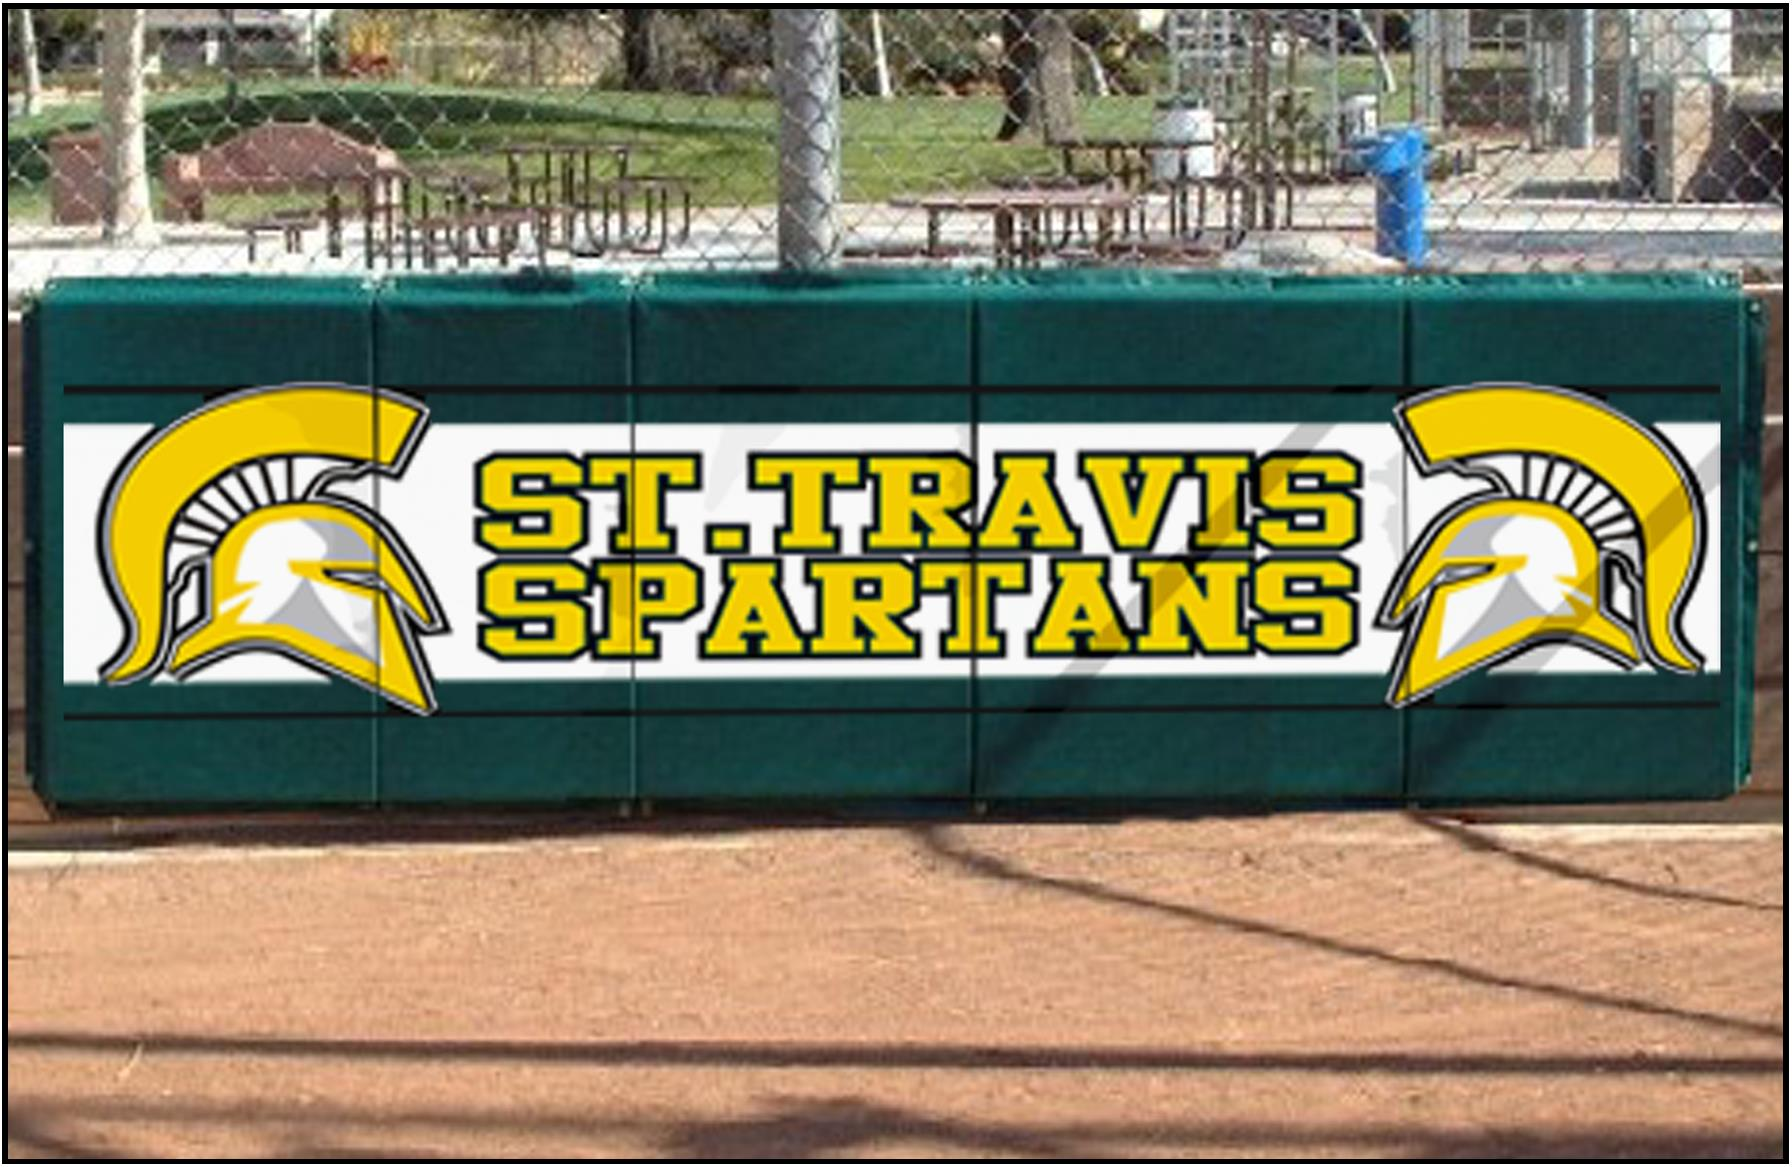 Wall Padding | Baseball Field